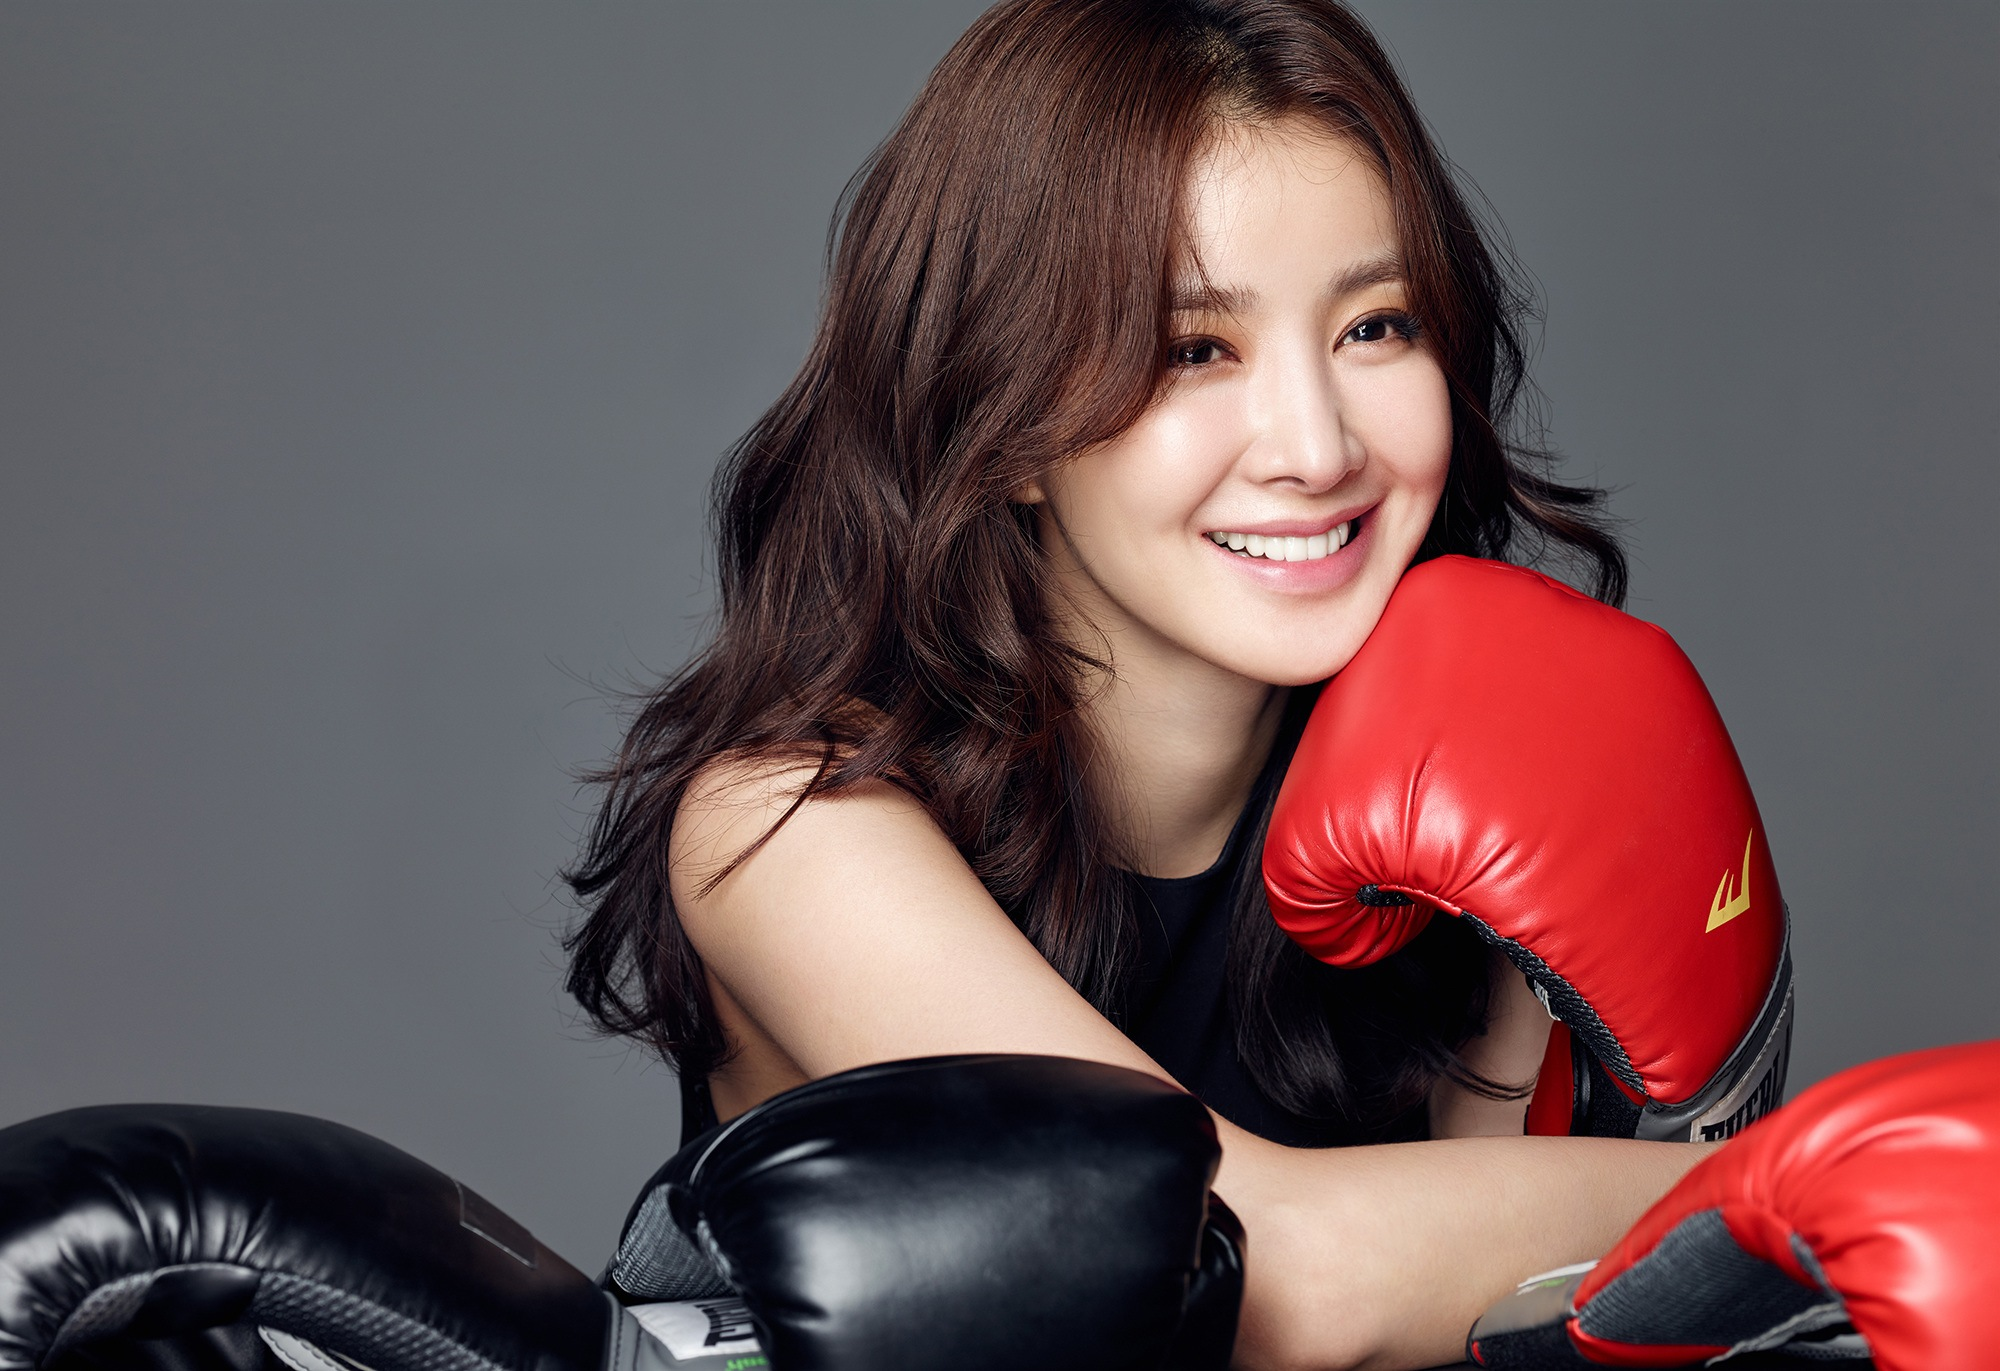 lee-si-young-e